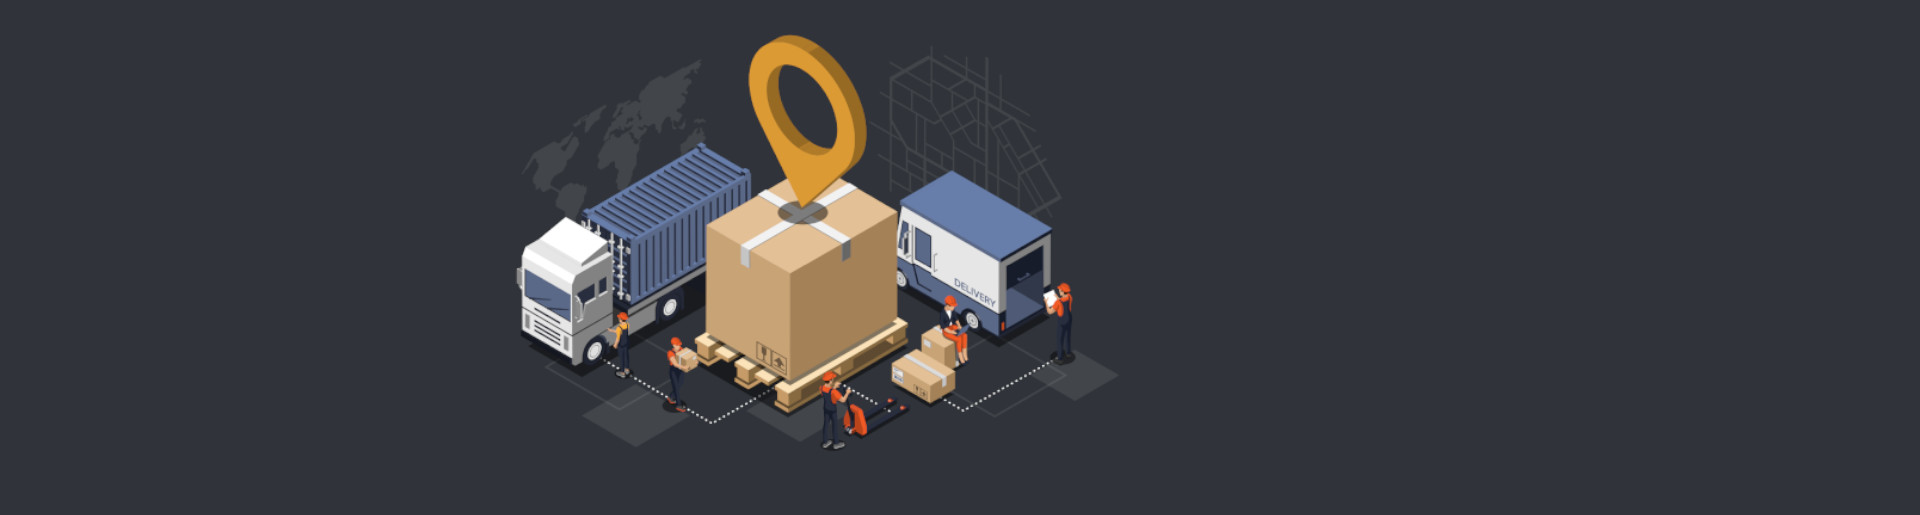 iot tracking devices in supply chain